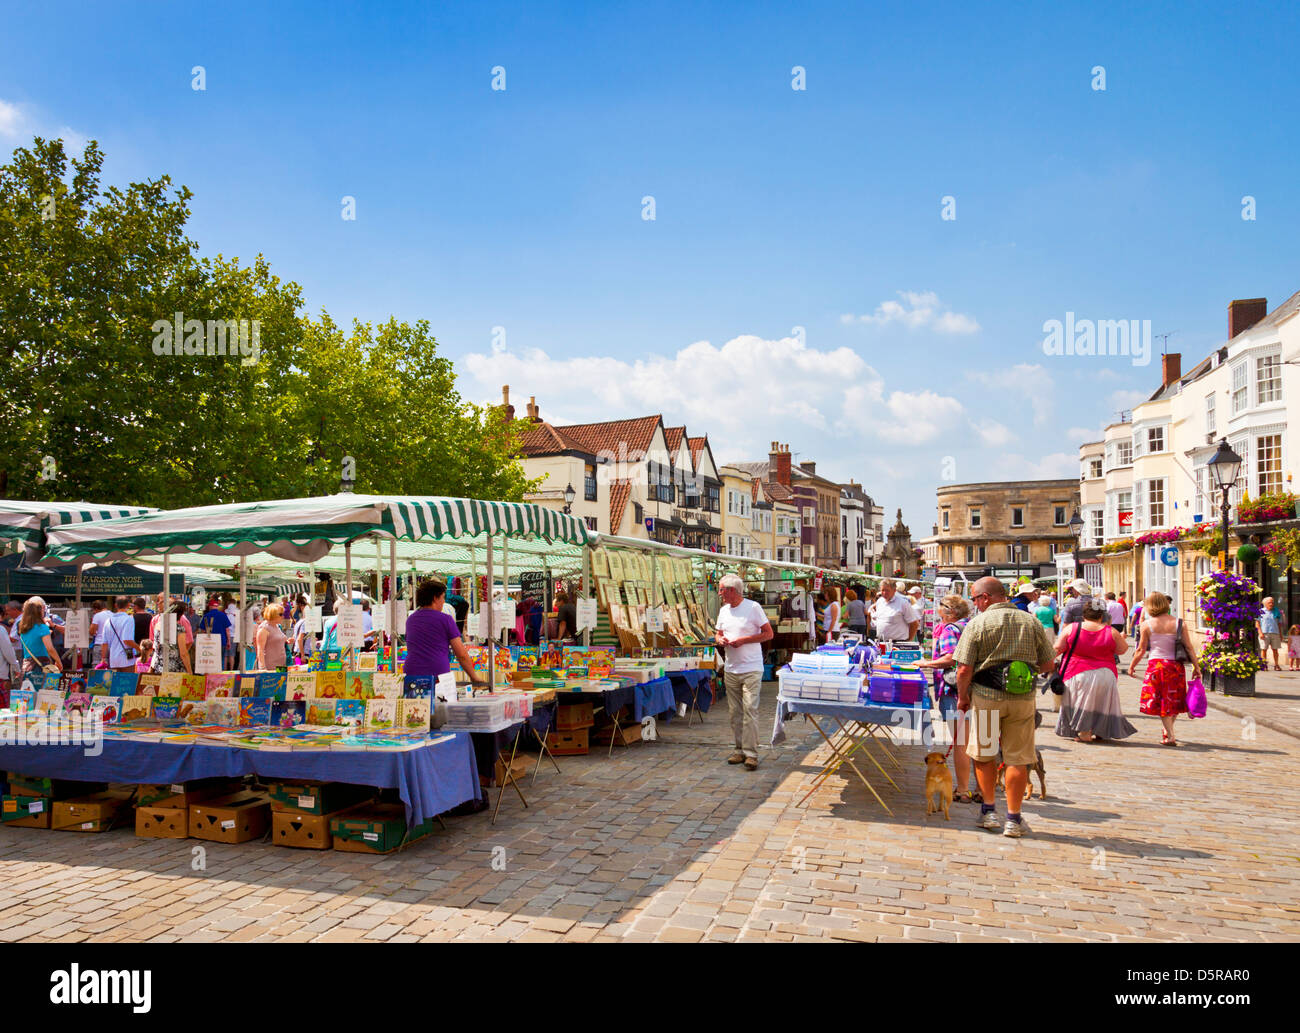 Traditional market stalls in Wells city market place Somerset England UK GB EU England - Stock Image